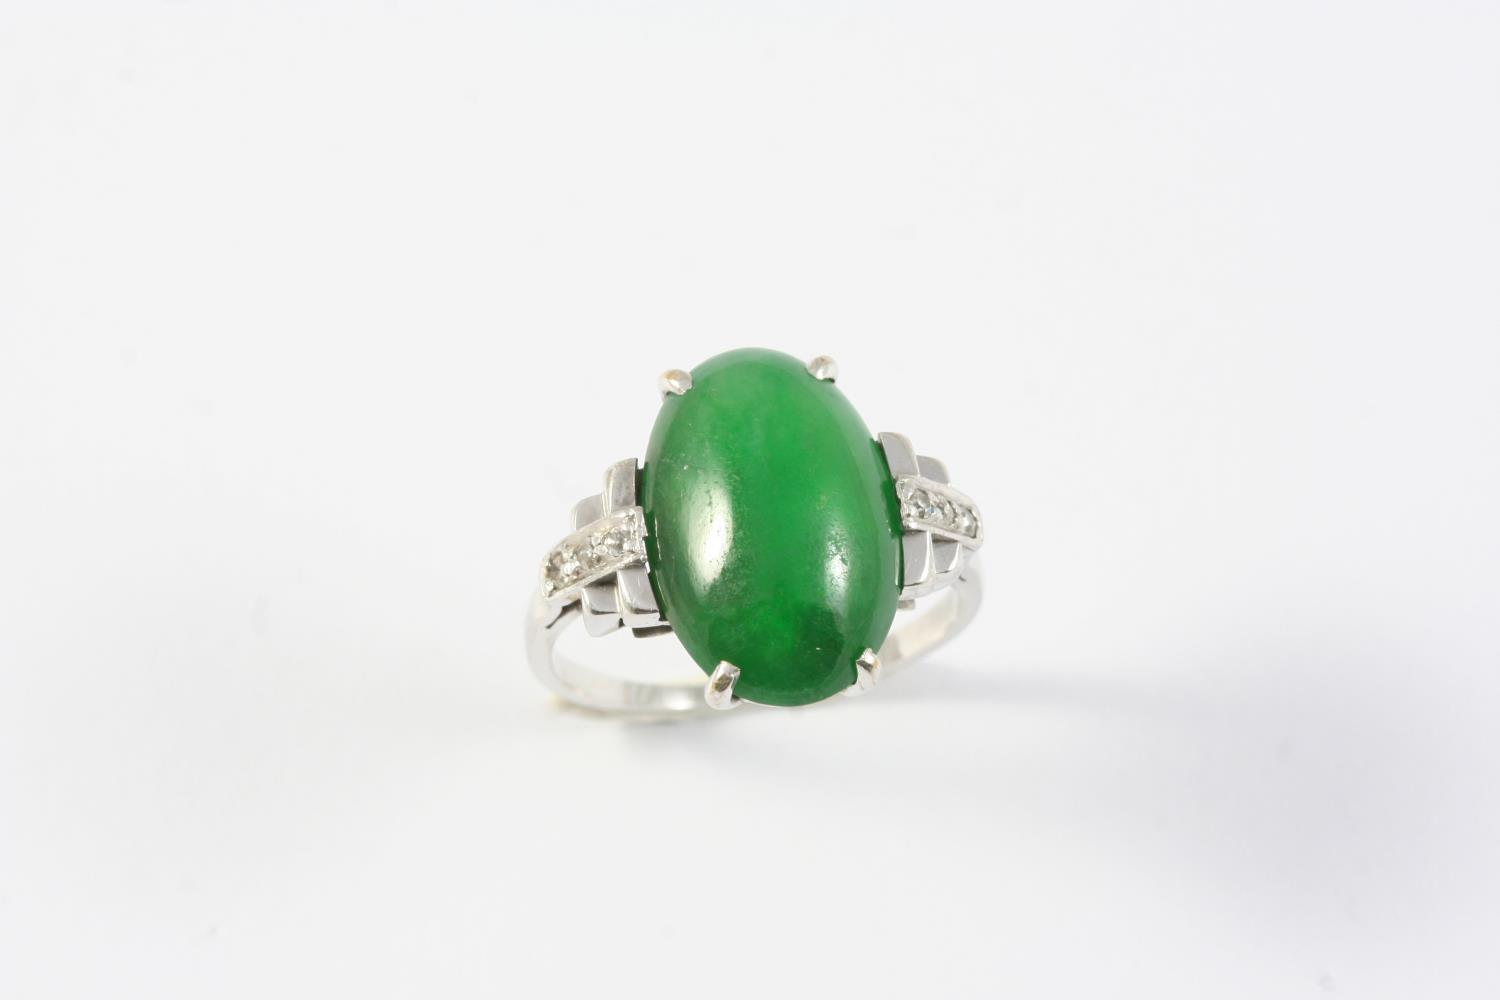 A JADE AND DIAMOND RING the oval-shaped cabochon jade is mounted with three circular-cut diamonds to